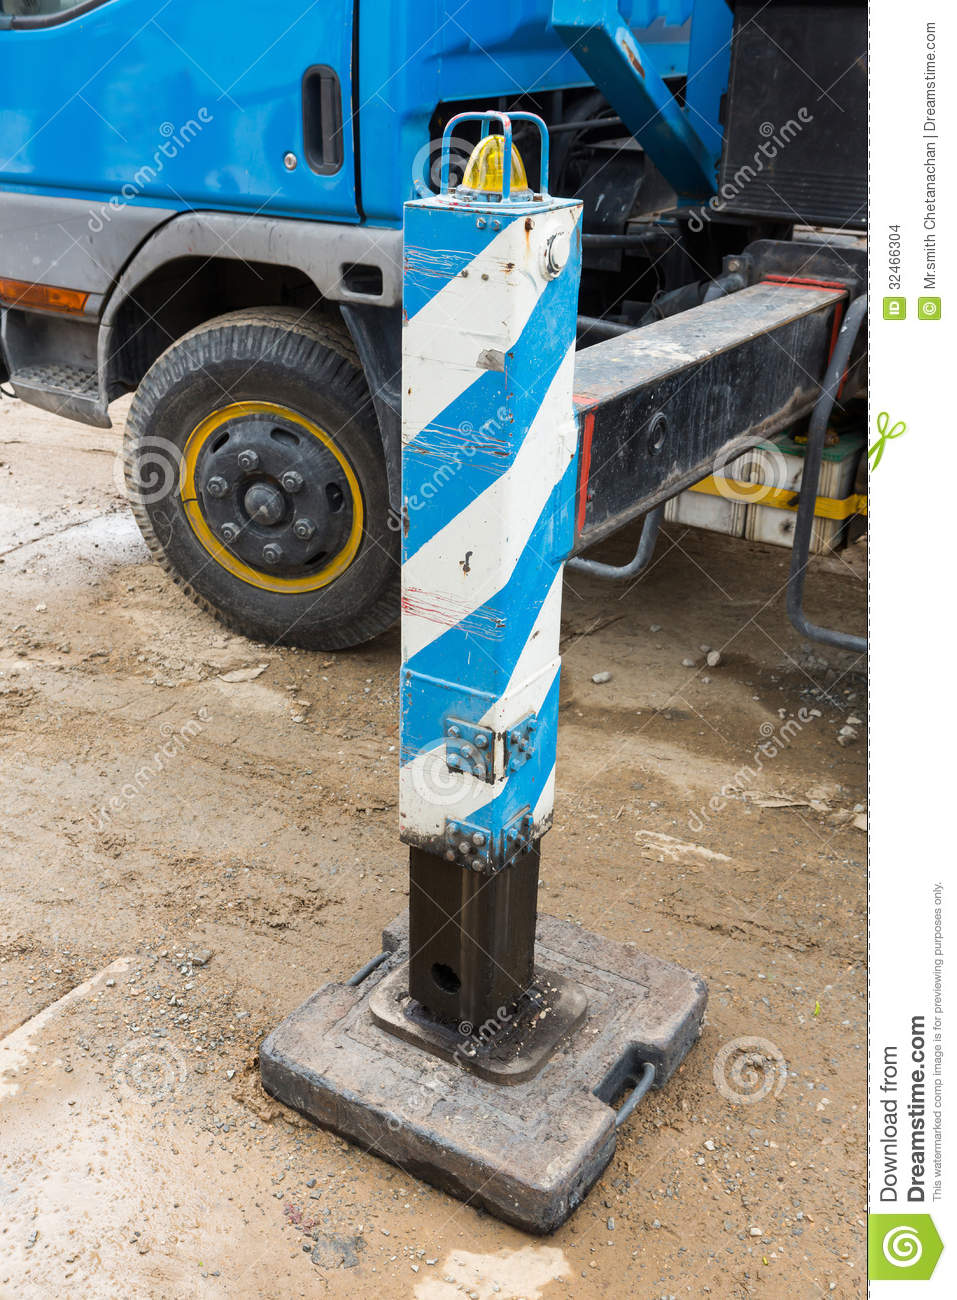 Crane Outrigger Pad Stock Images - Image: 32466304